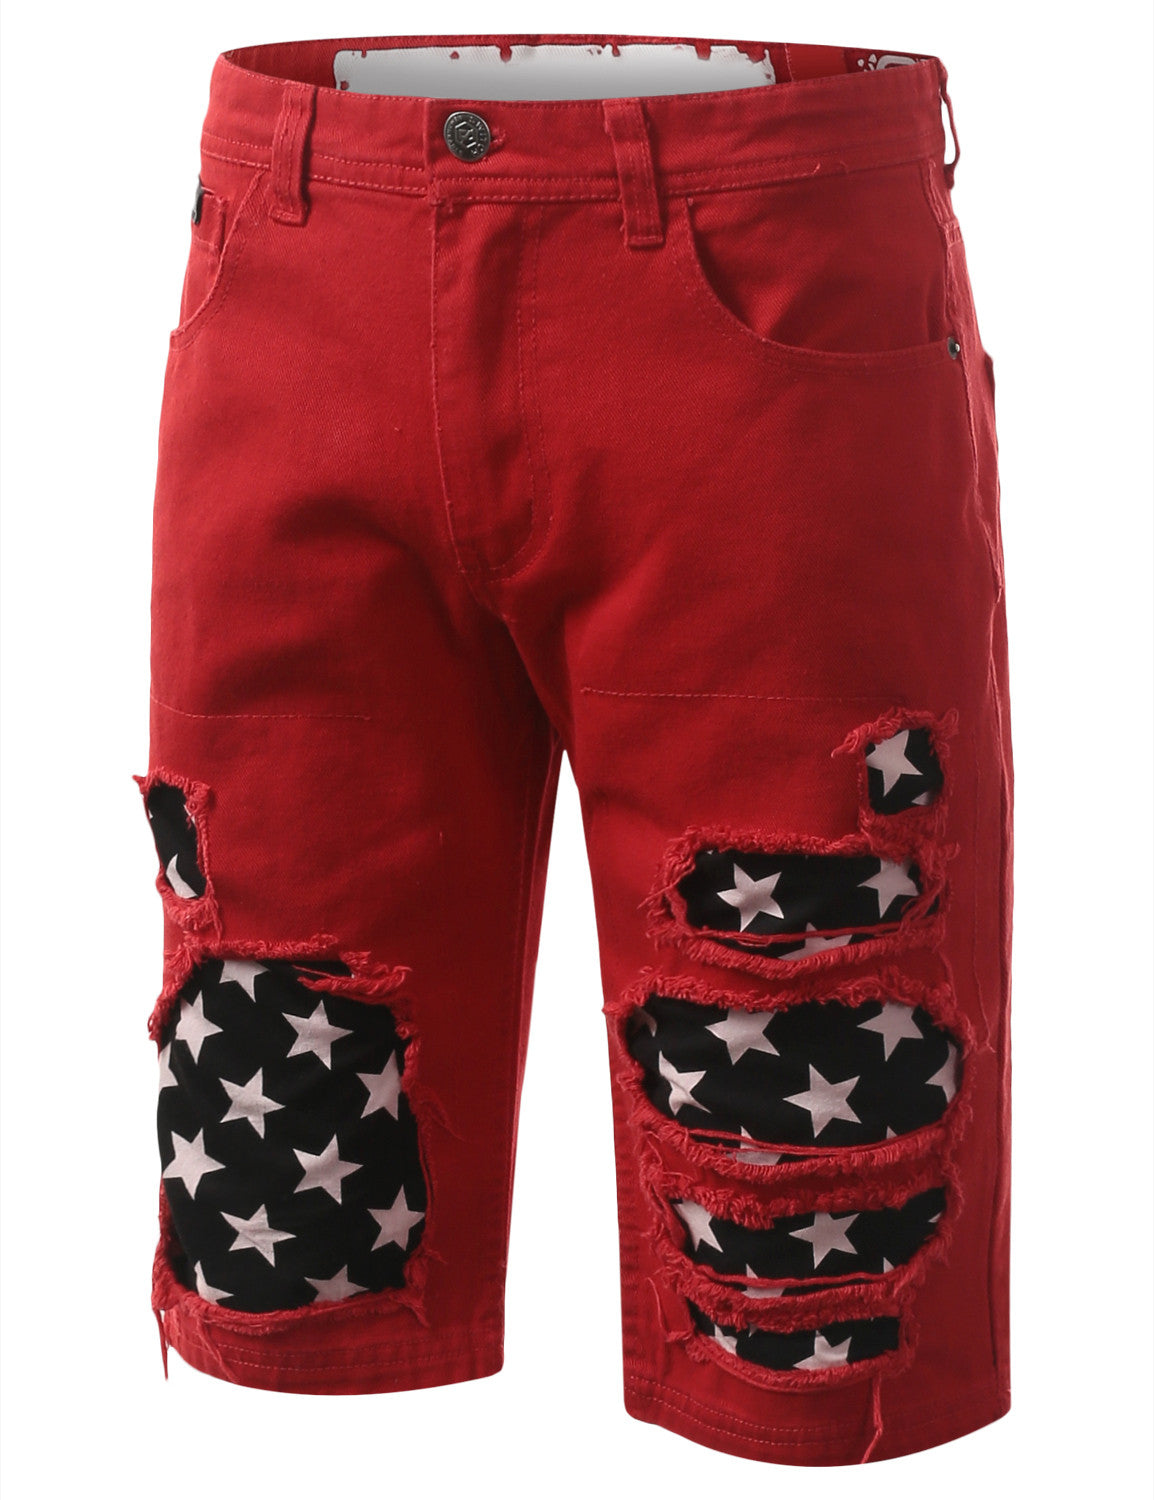 Rip Star Patch Denim Shorts - URBANCREWS - 7